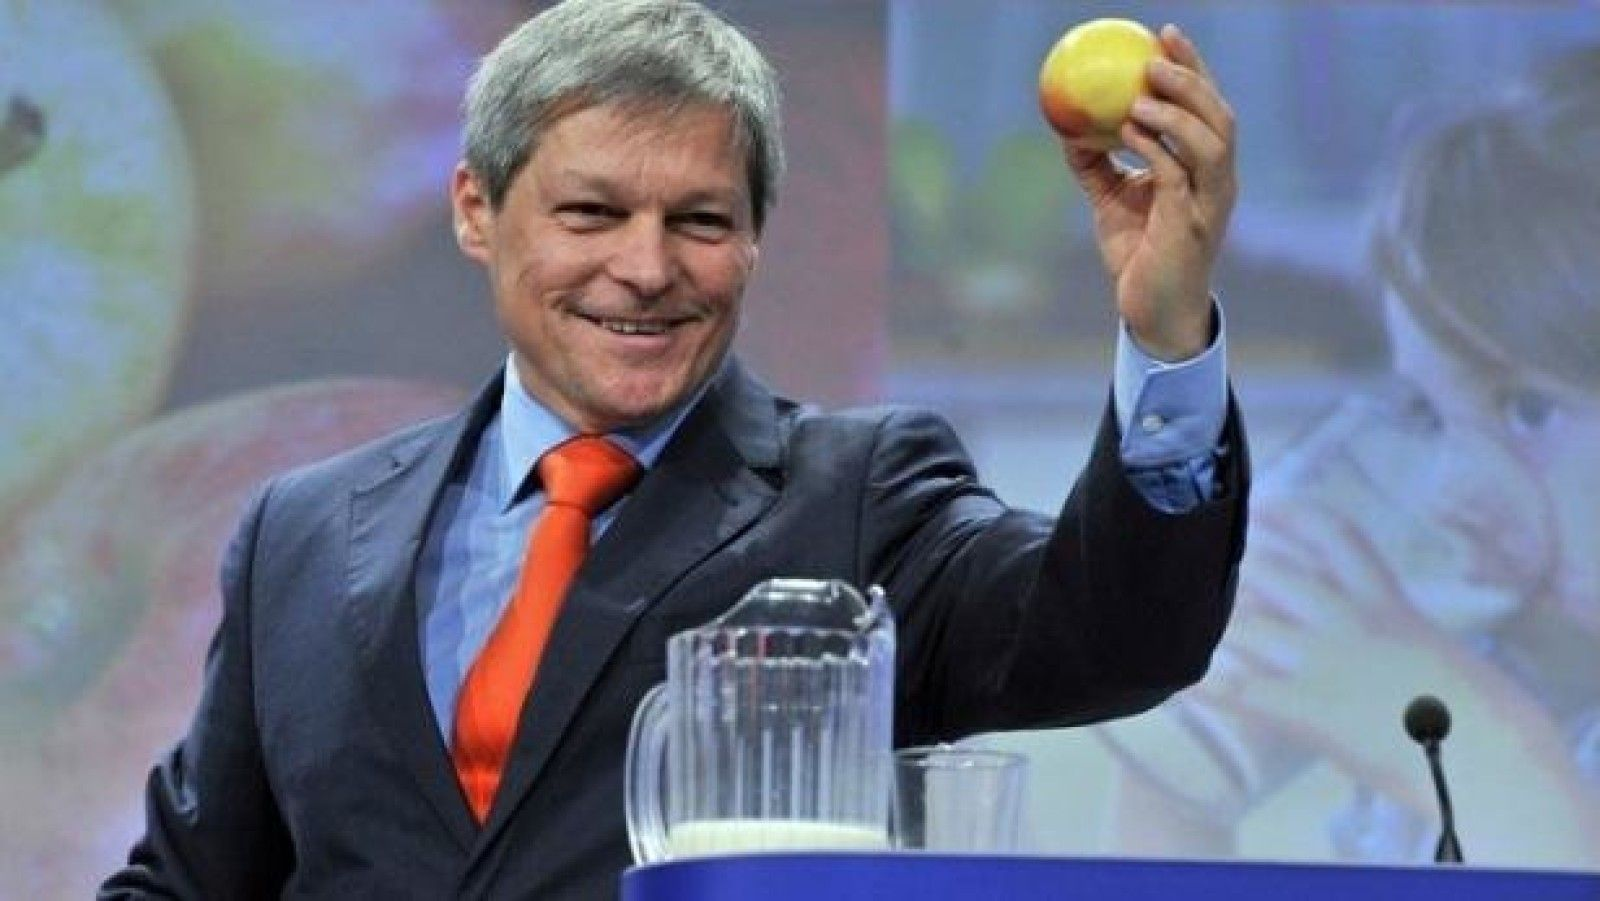 Dacian Ciolos hopes to show Romanians there is an alternative